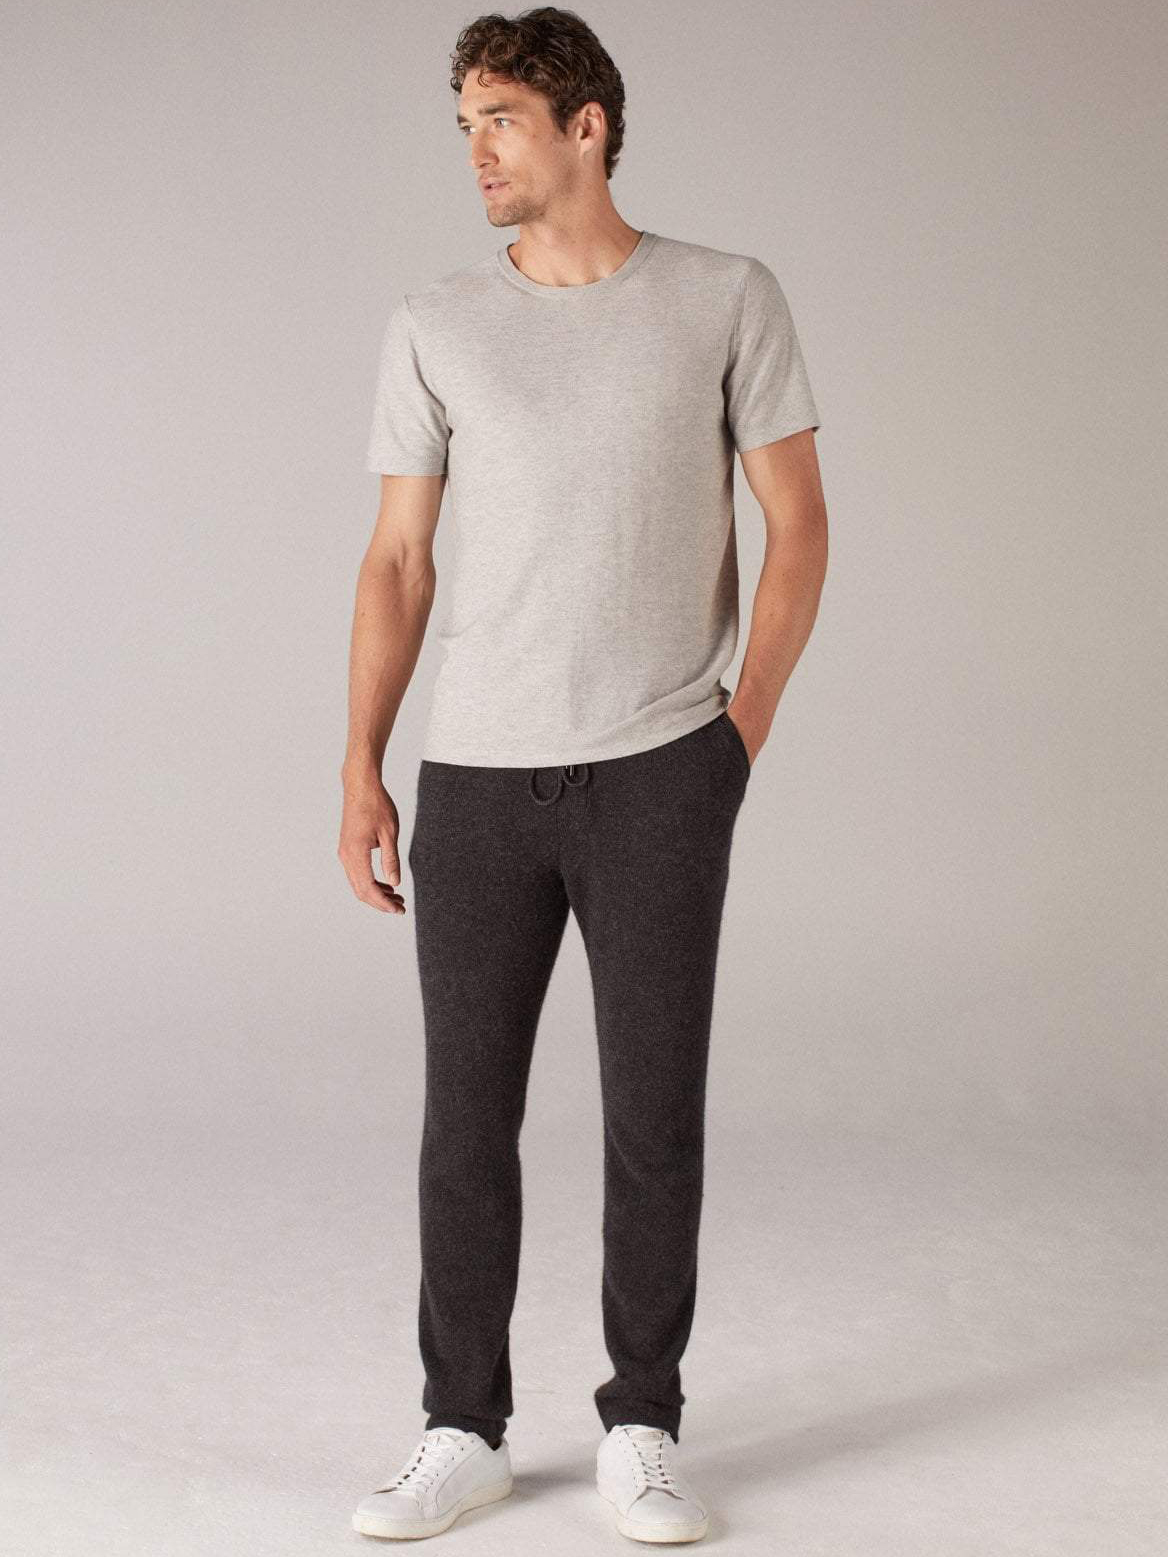 100% Cashmere Sweatpants | Naadam // Sustainable Valentine's Day Gifts For Men on The Good Trade